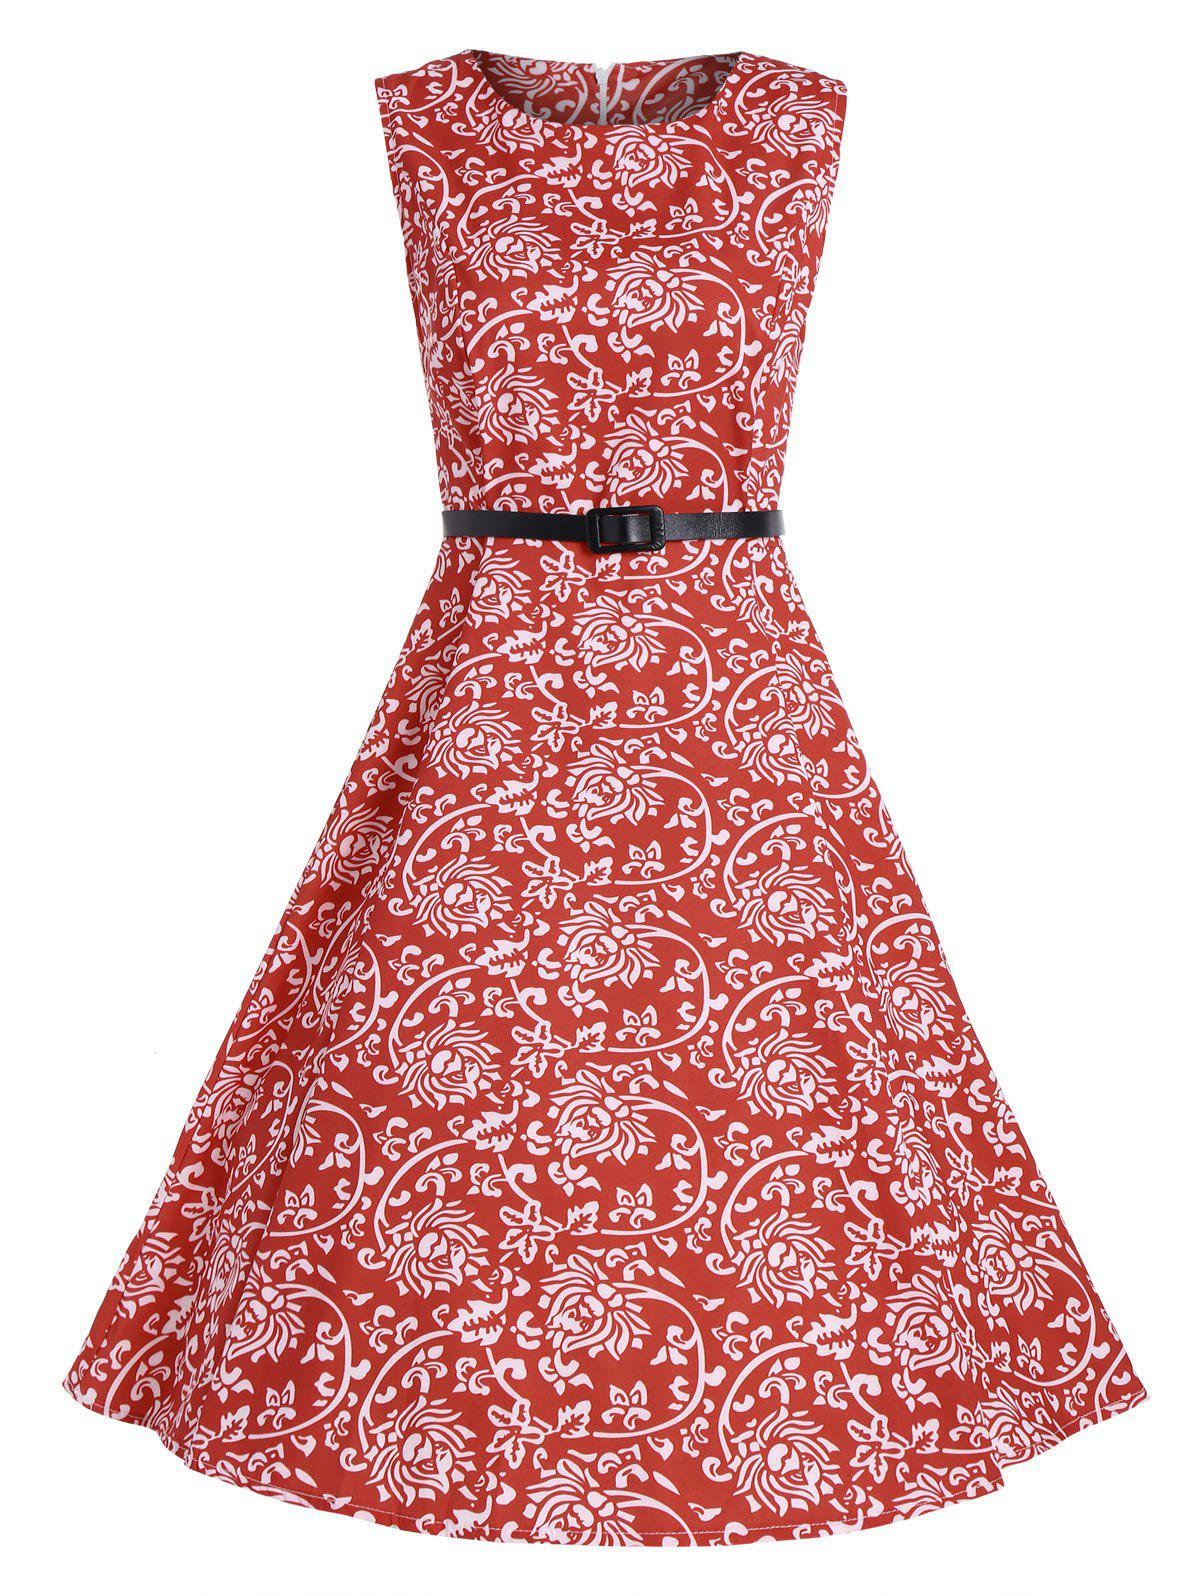 Print A Line High Waist Party Vintage DressWOMEN<br><br>Size: S; Color: RED; Style: Vintage; Material: Polyester; Silhouette: A-Line; Dresses Length: Knee-Length; Neckline: Round Collar; Sleeve Length: Sleeveless; Pattern Type: Print; With Belt: Yes; Season: Spring,Summer; Weight: 0.2800kg; Package Contents: 1 x Dress  1 x Belt;